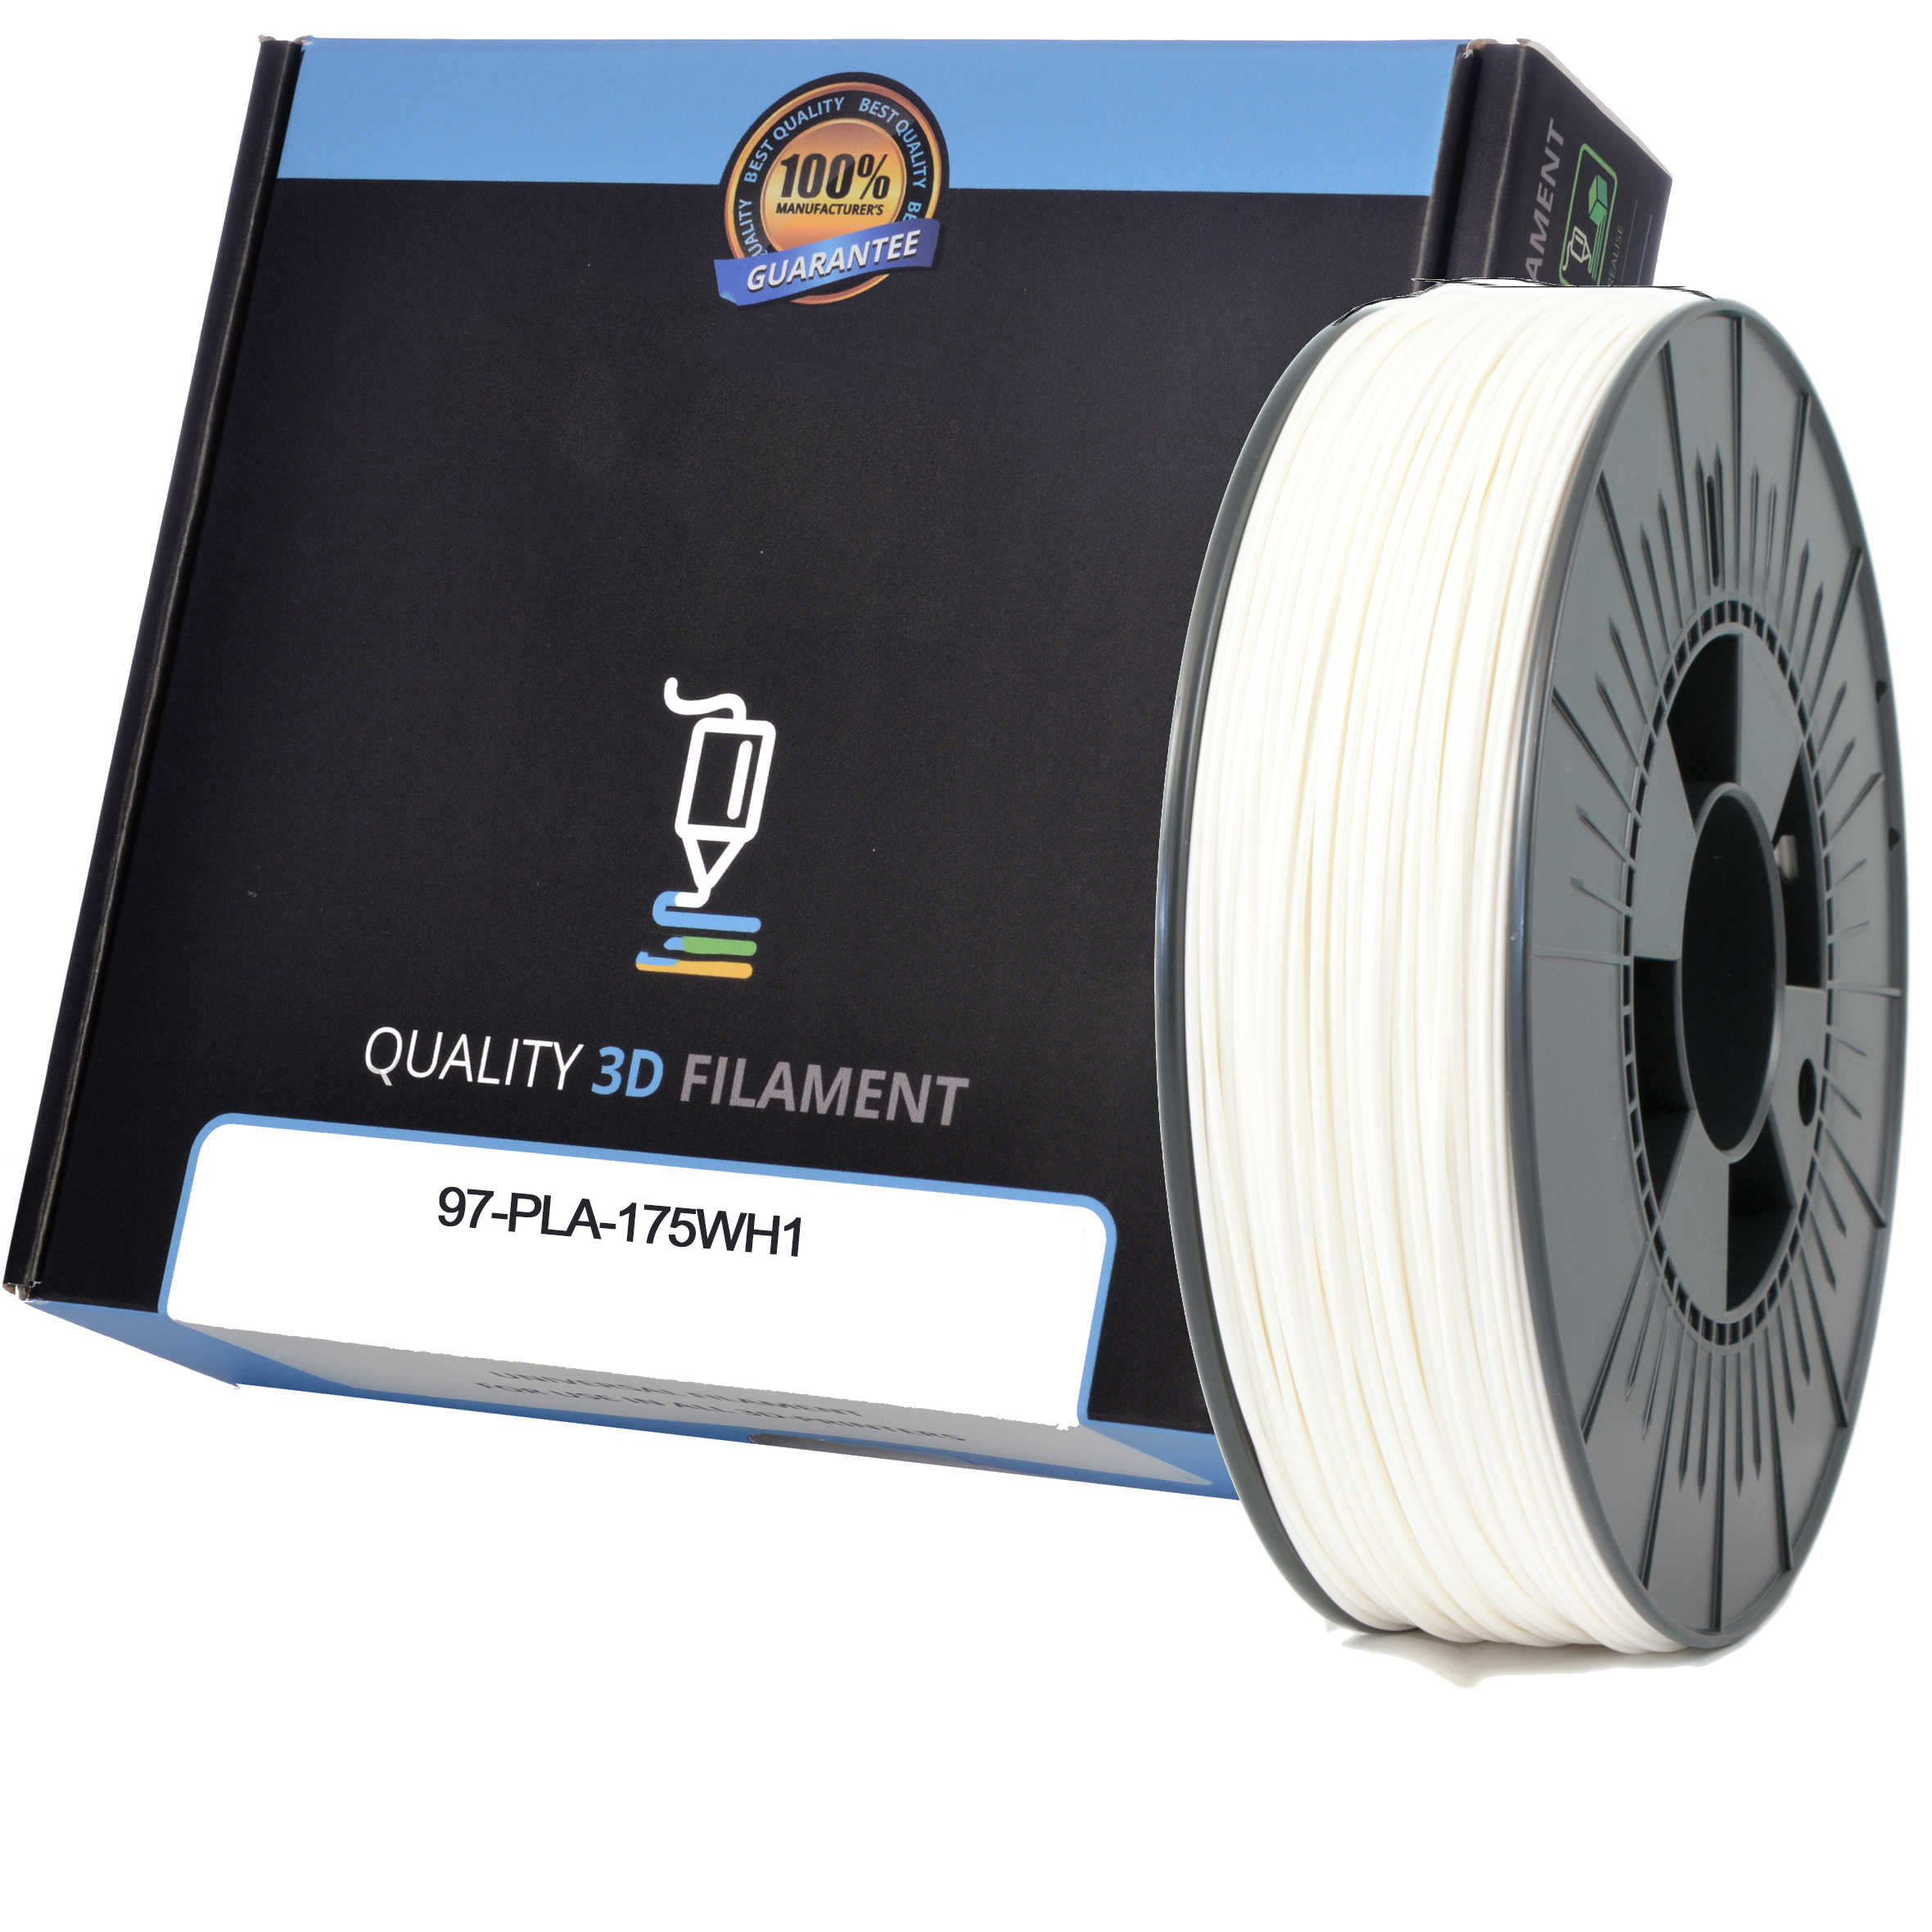 Premium Compatible PLA 1.75mm White 1kg 3D Filament (97-PLA-175WH1)